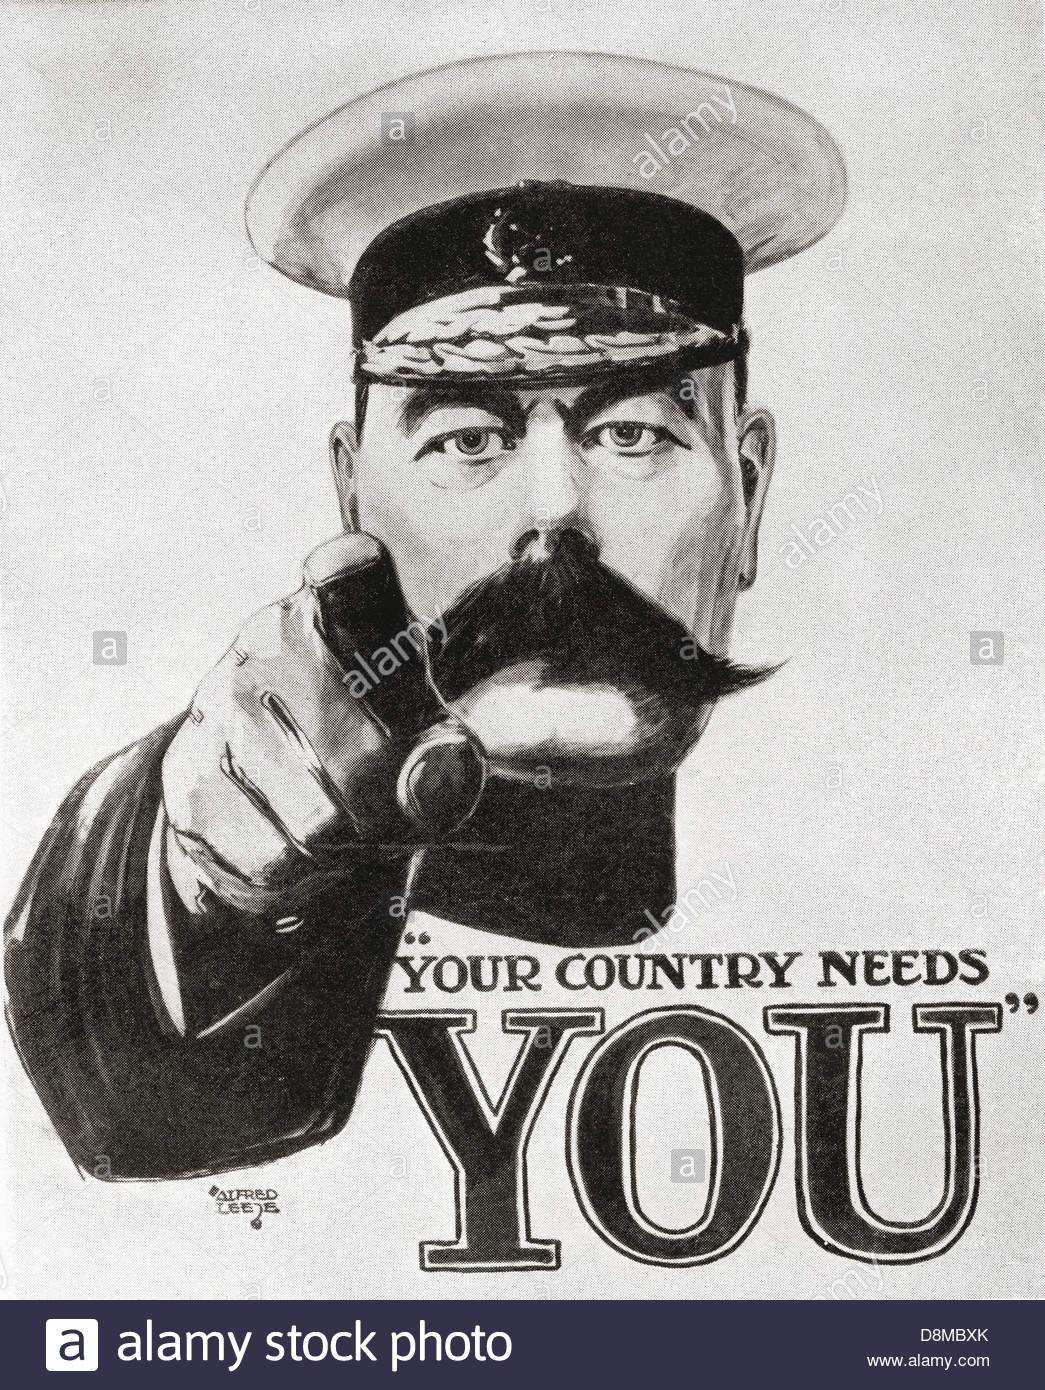 Your country needs you clipart 8 » Clipart Portal.